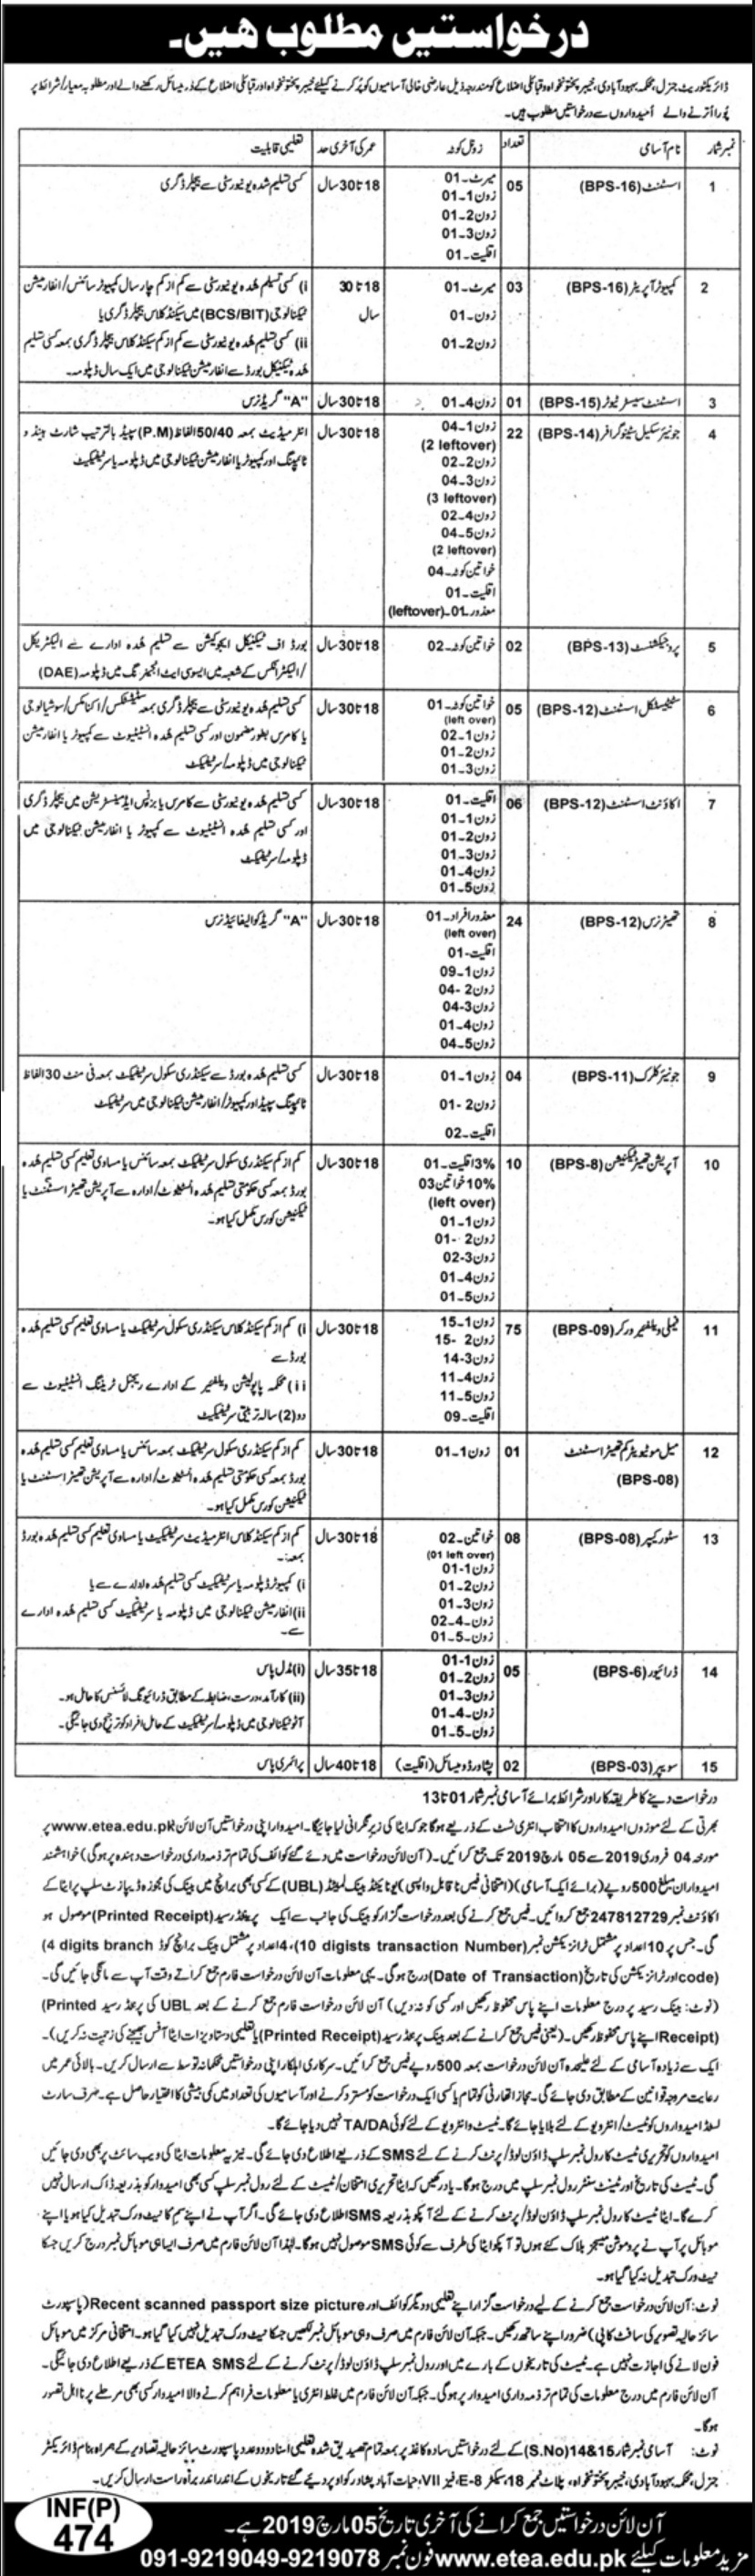 Population Welfare Department Peshawar KPK Jobs ETEA Latest